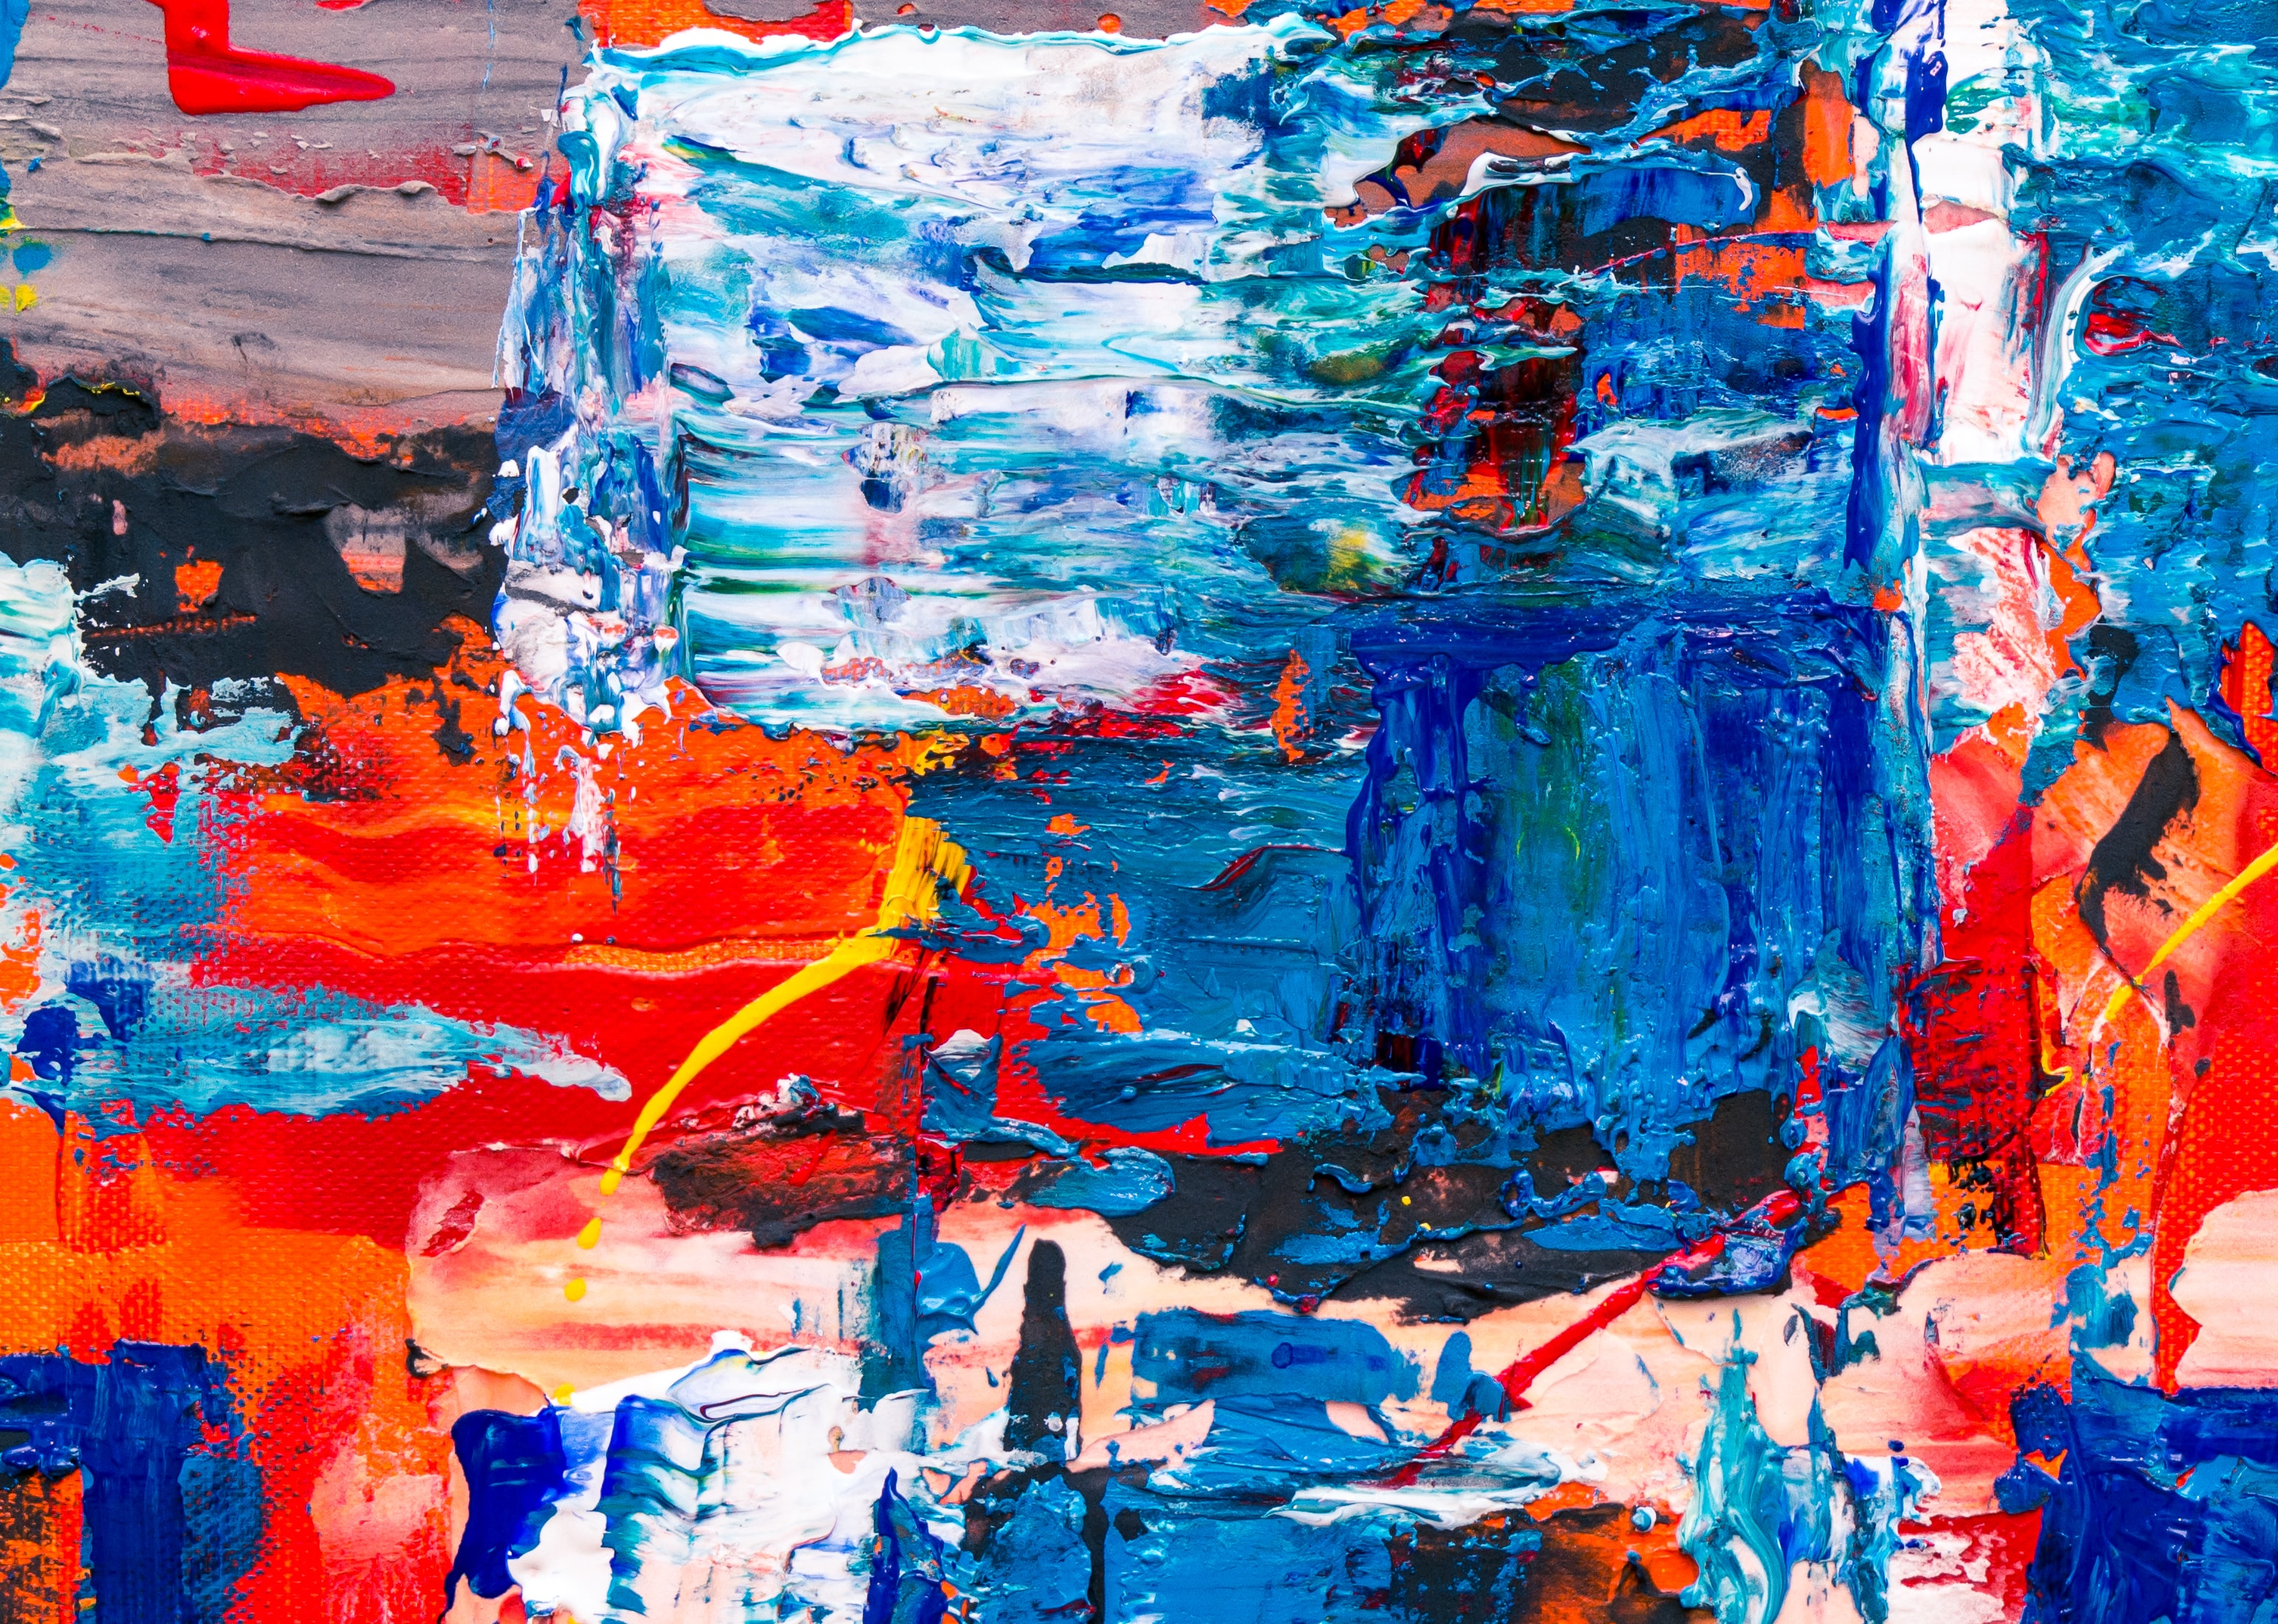 multicolored abstract painting illustration